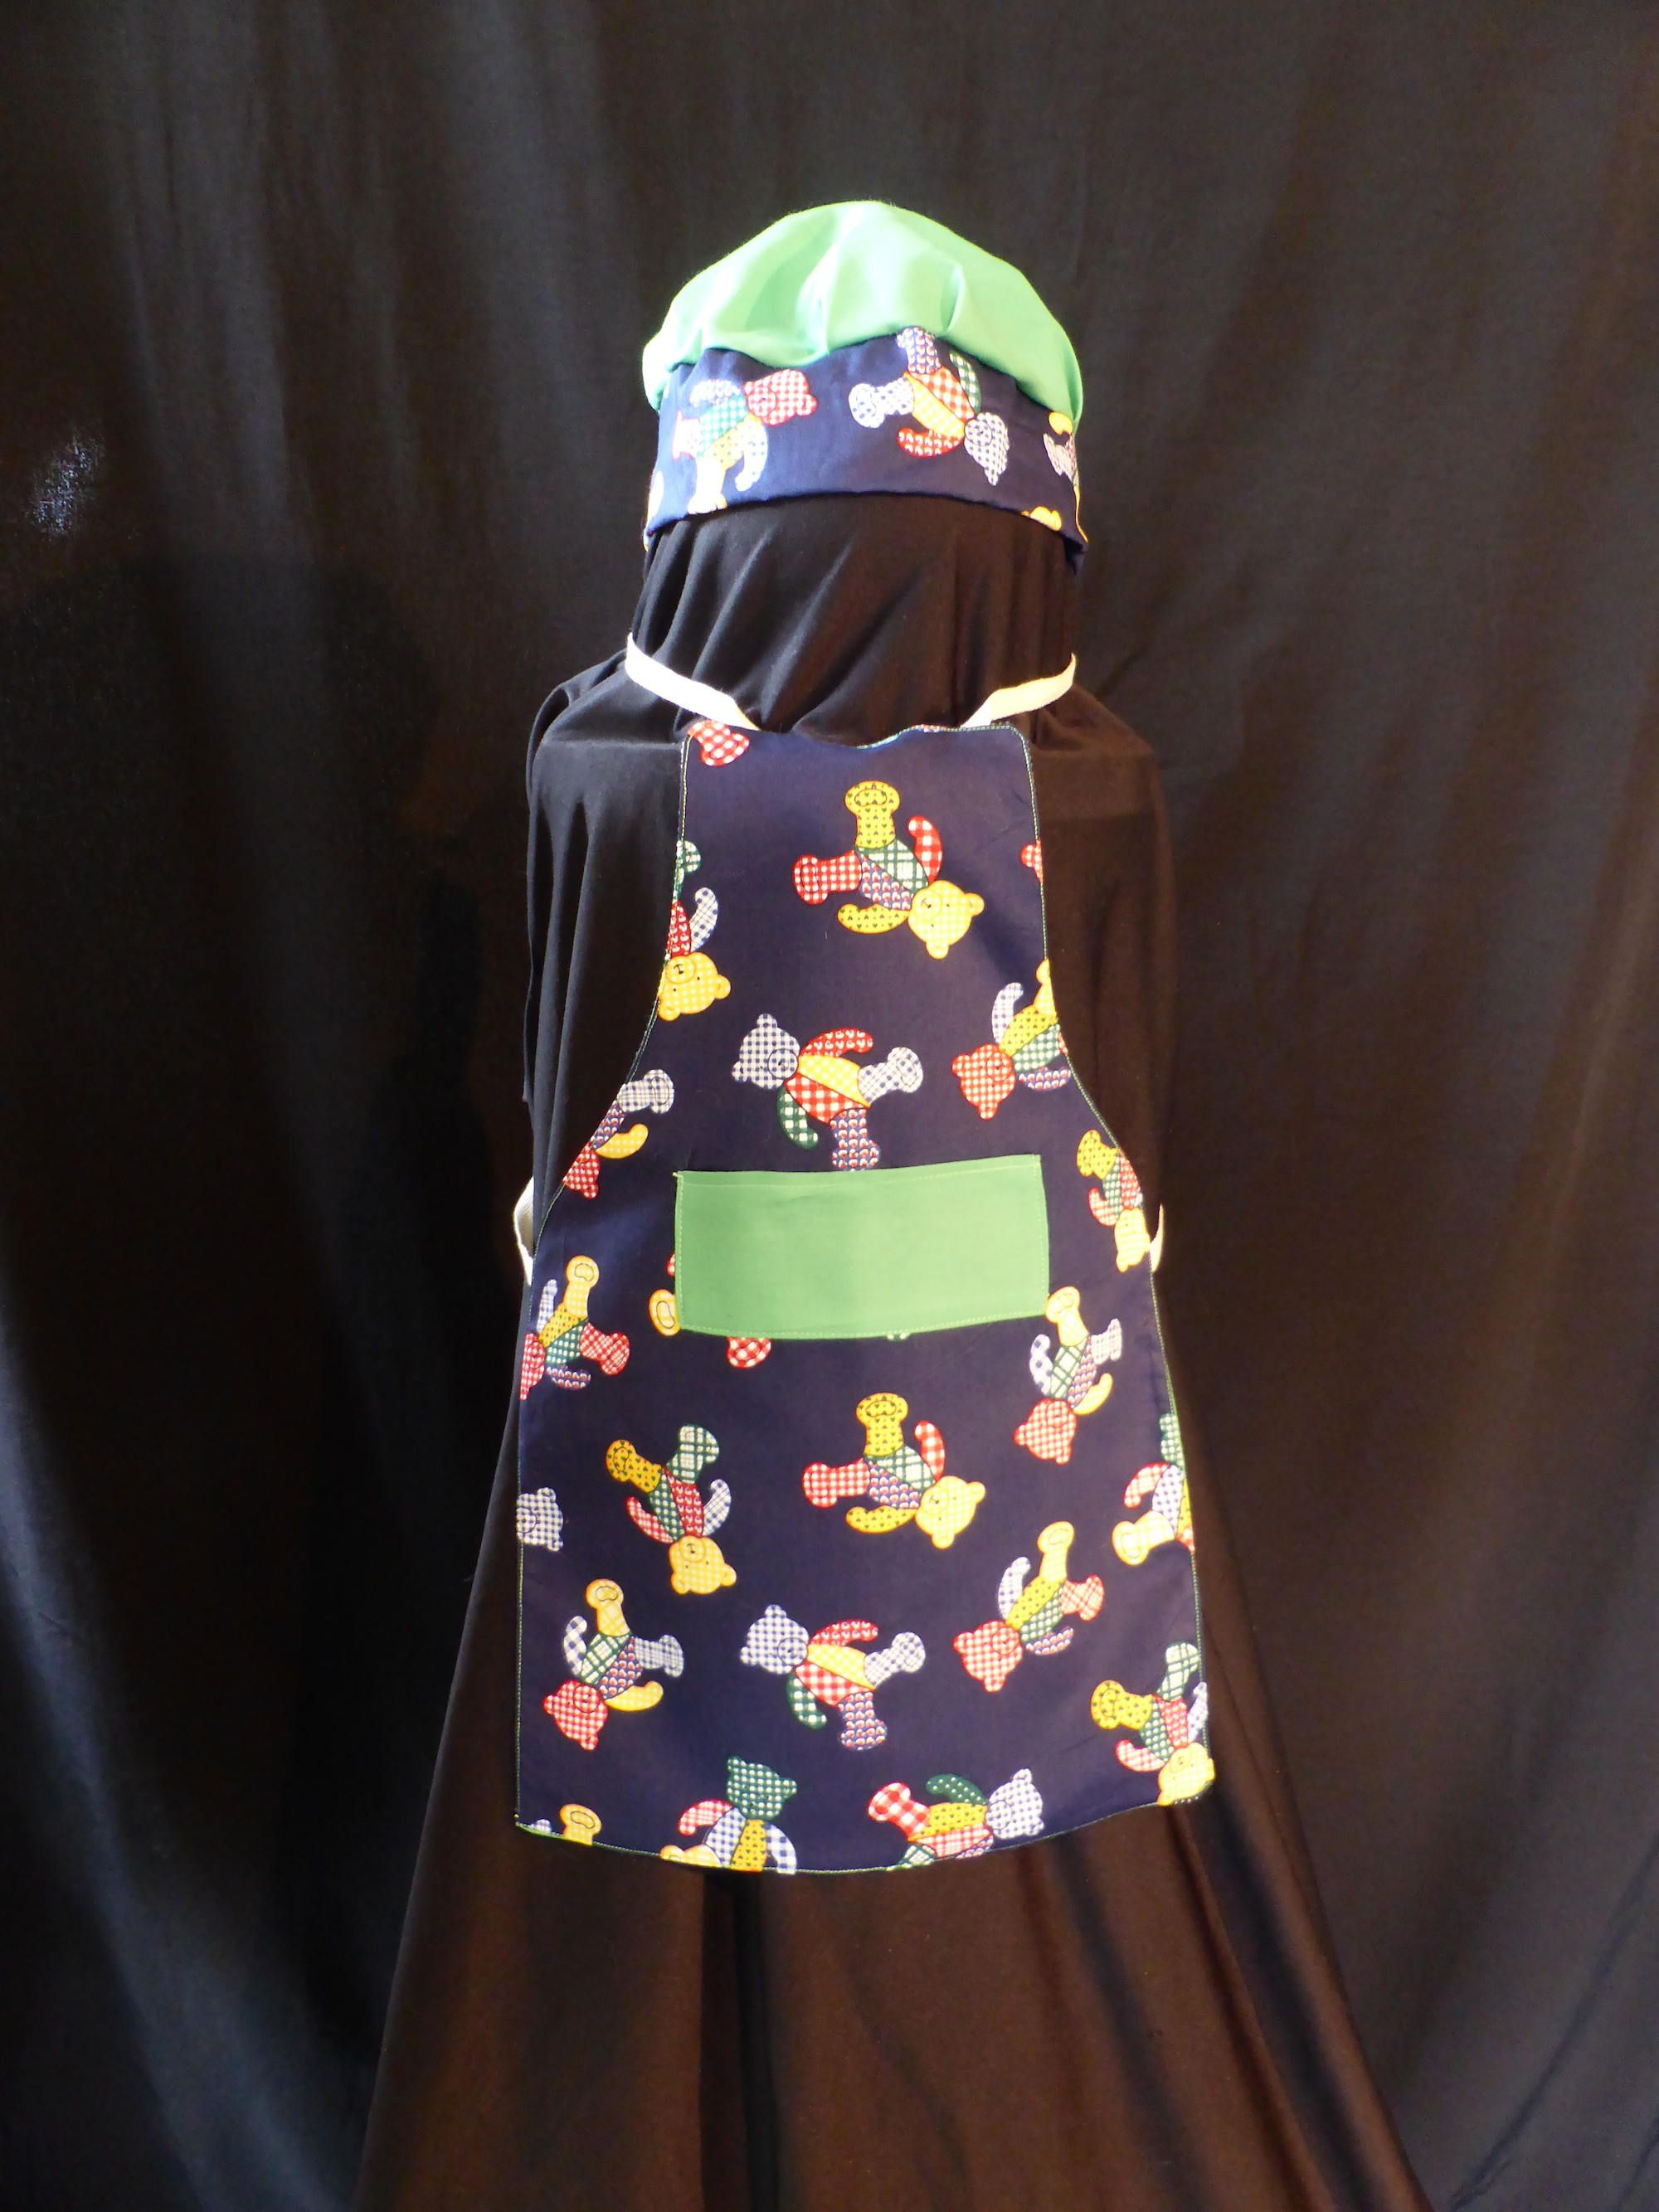 Blue apron green chef - Handmade 0 2 Years Kids Navy Blue Teady Bear Apron With Chefs Hat